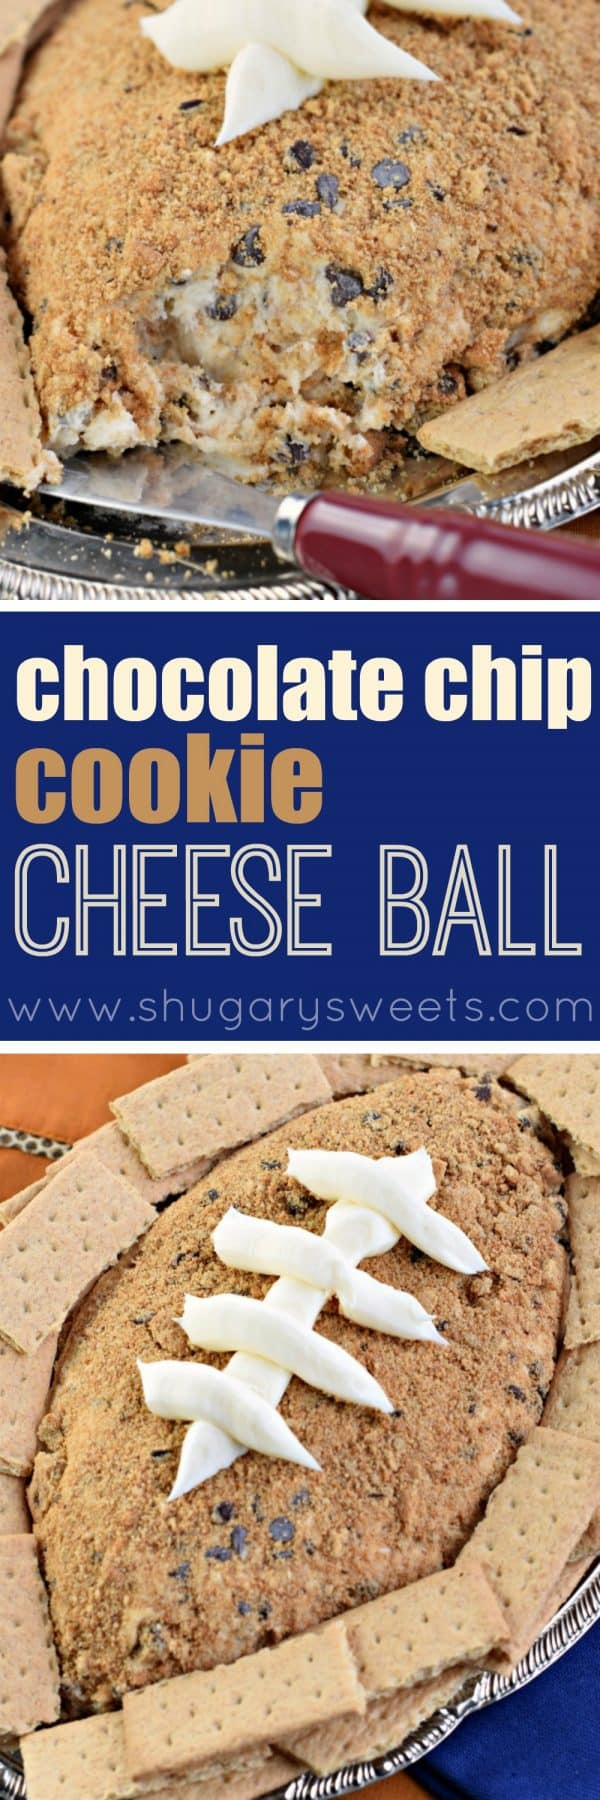 Enjoy a sweet cheese ball recipe for game day with this Chocolate Chip Cookie Cheese Ball recipe. Packed with cream cheese and chocolate chip cookies, it will be the hit of your dessert table!